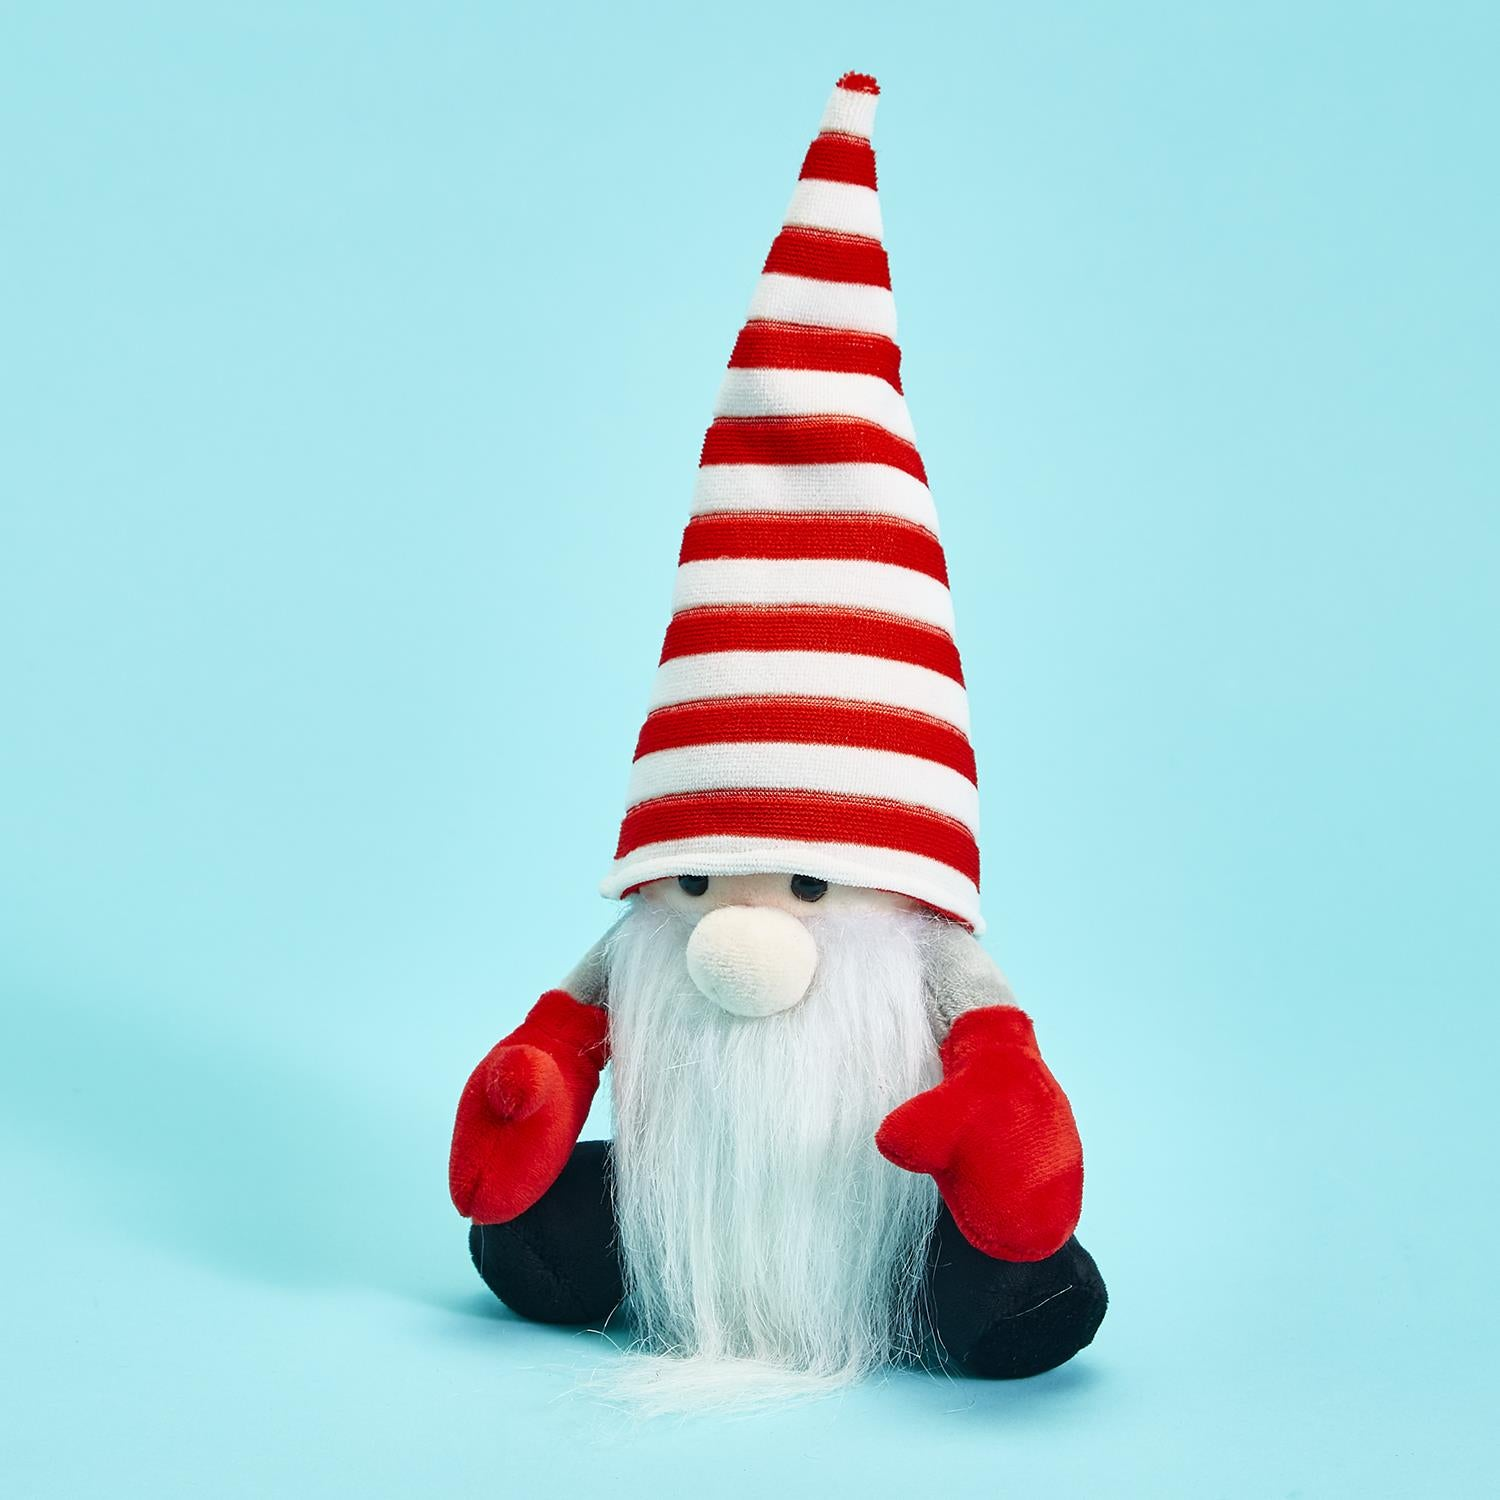 "This cute little Gnome will say exactly what you say. Adorable for kids and fun for all ages.   Holiday Gnome with Speak and Repeat Body Movement Functions (requires 3 AAA batteries, not included) Polyester/Plastic 6 1/2"" W x 5"" D x 12"" H."